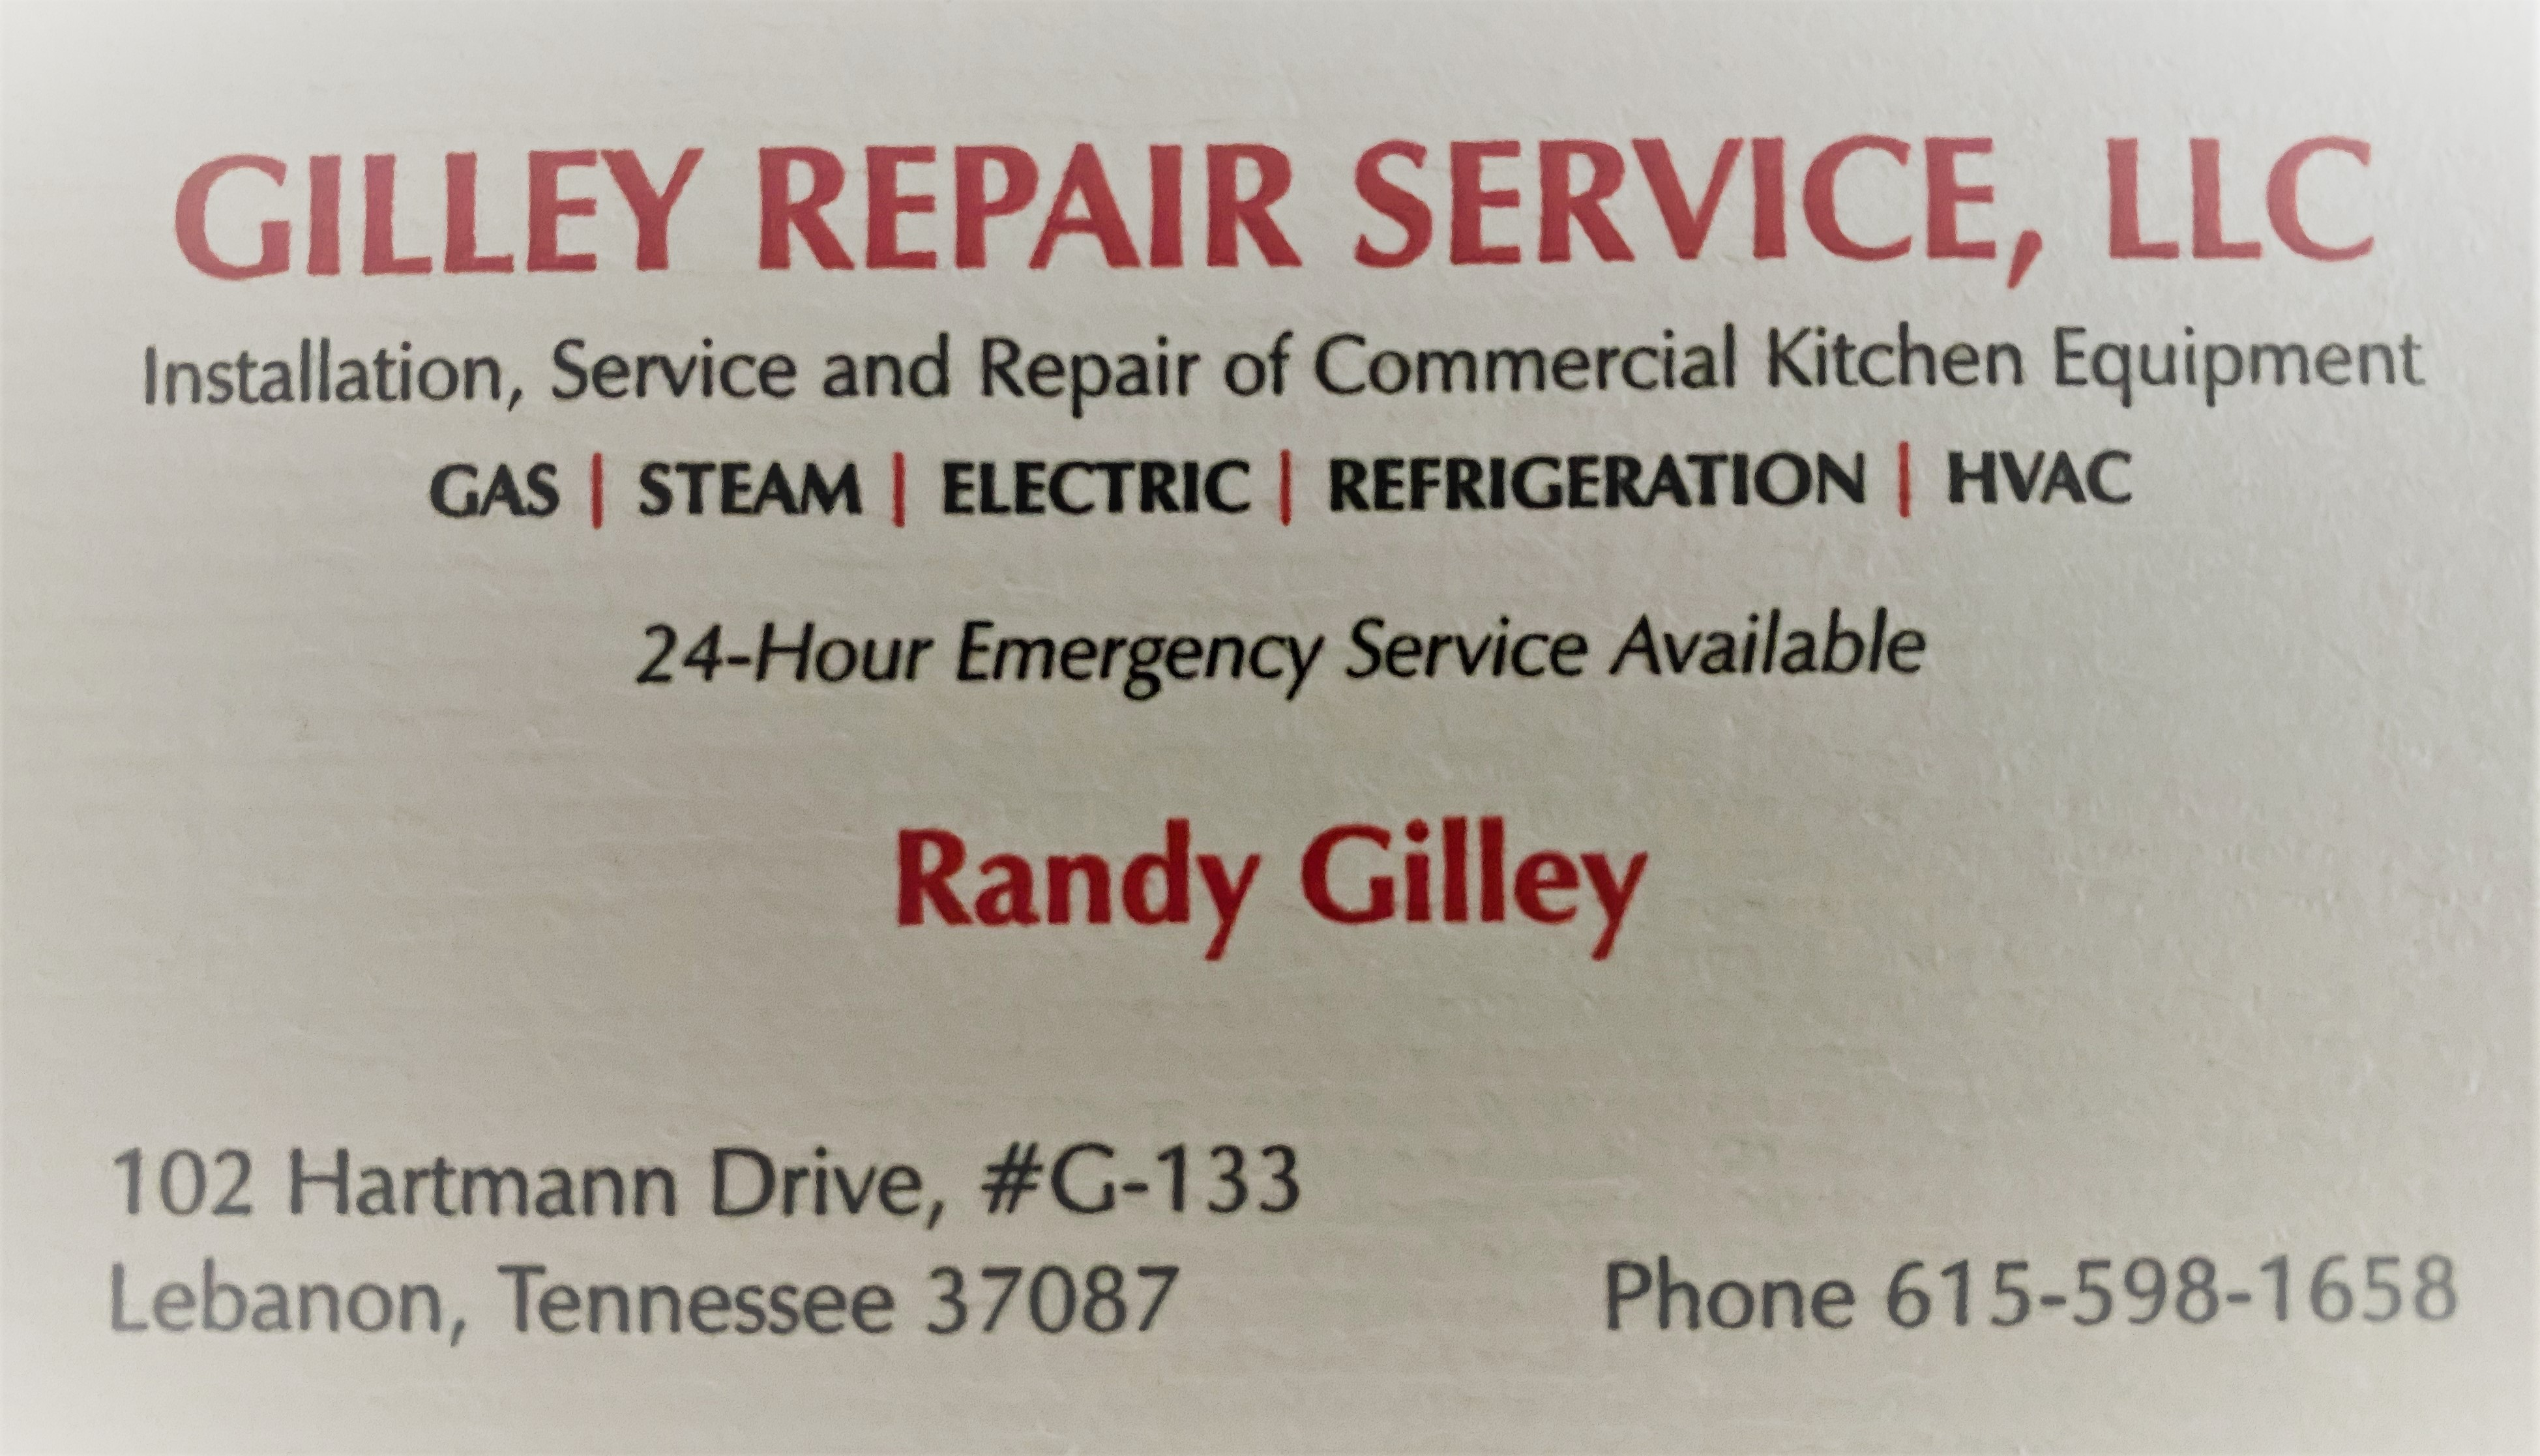 Gilley Repair Service business card